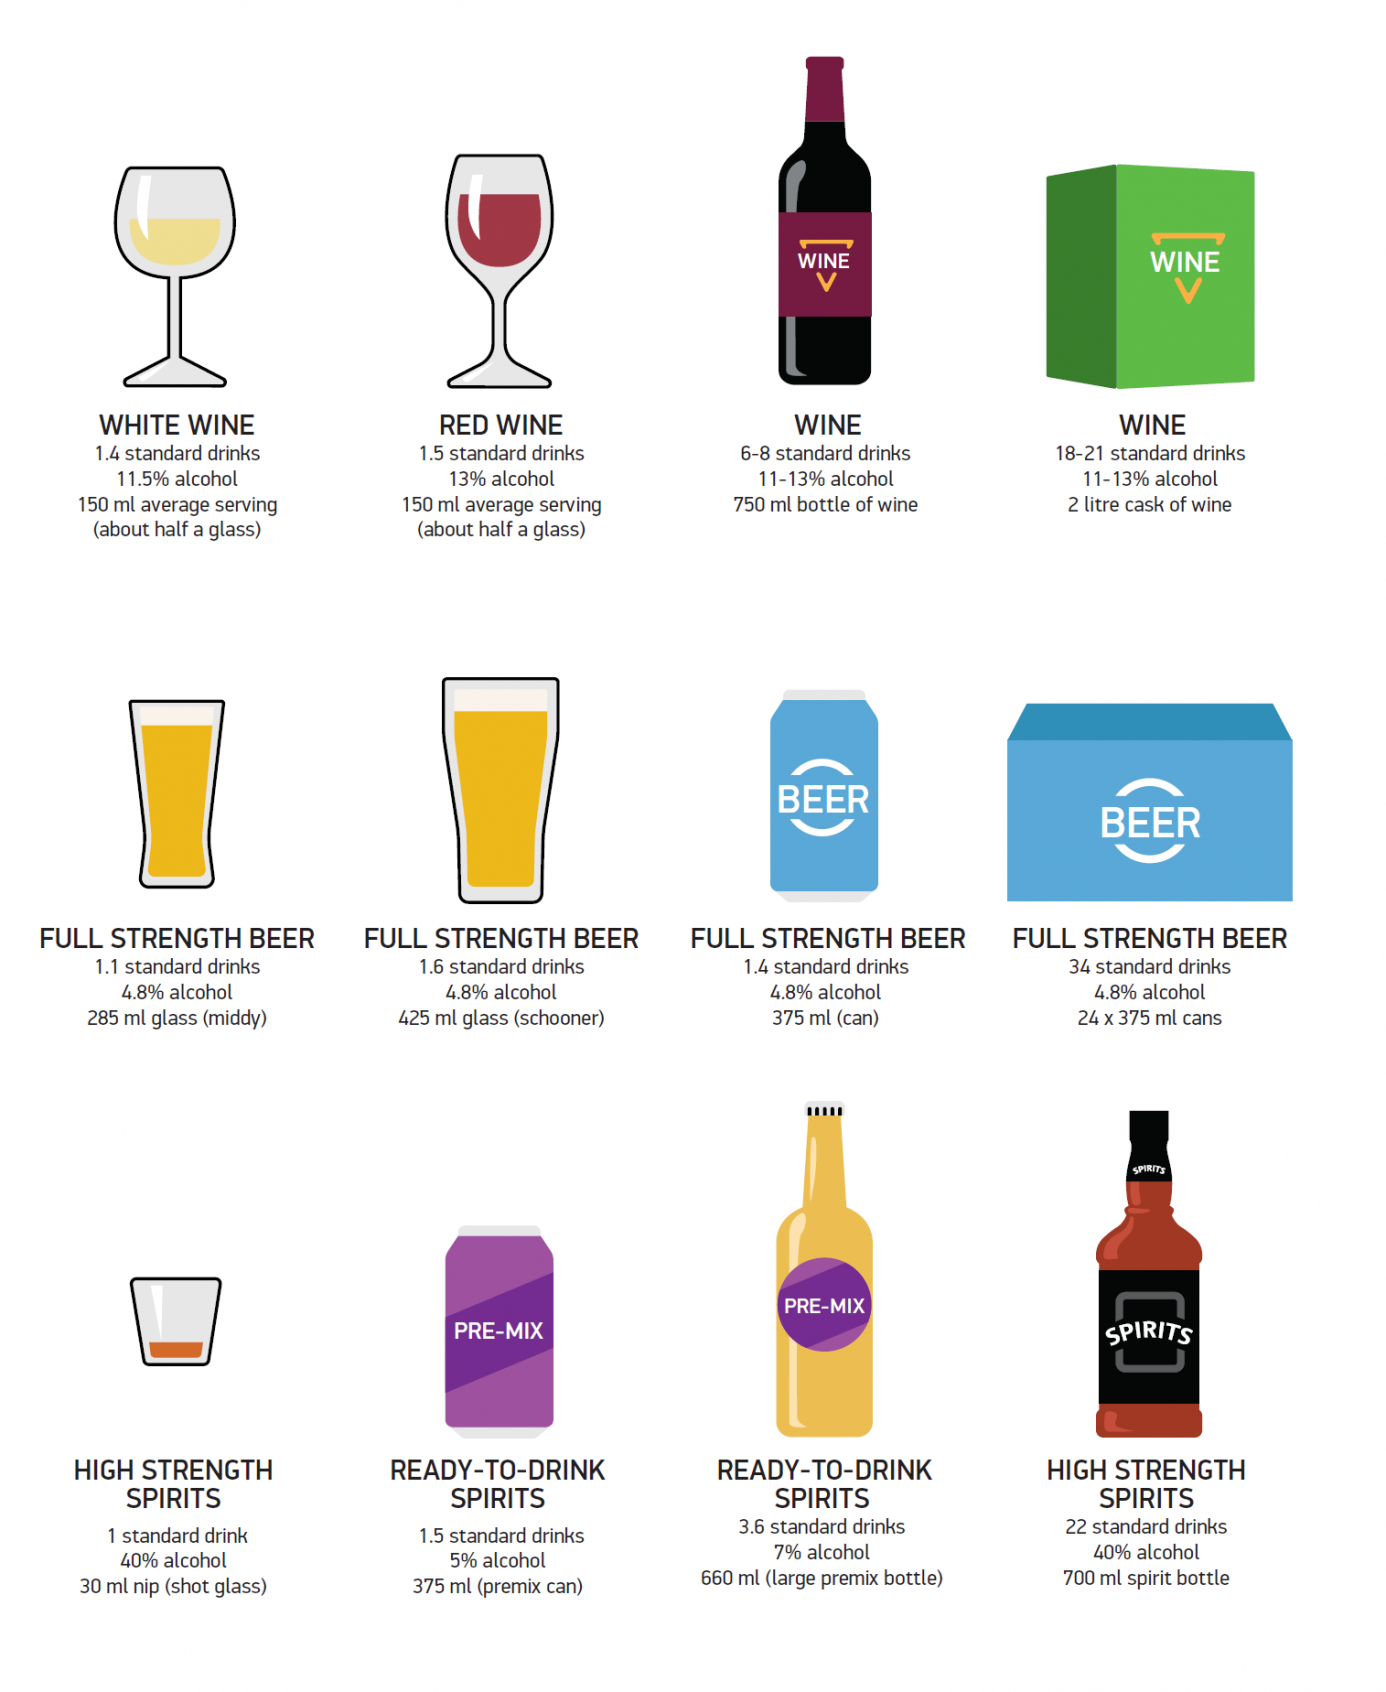 Can You Drink Alcohol On A Low Carb Diet A Useful Guide To The Carbohydrates In Alcoholic Drinks Alcoholic Drinks Alcohol Low Carb Diet